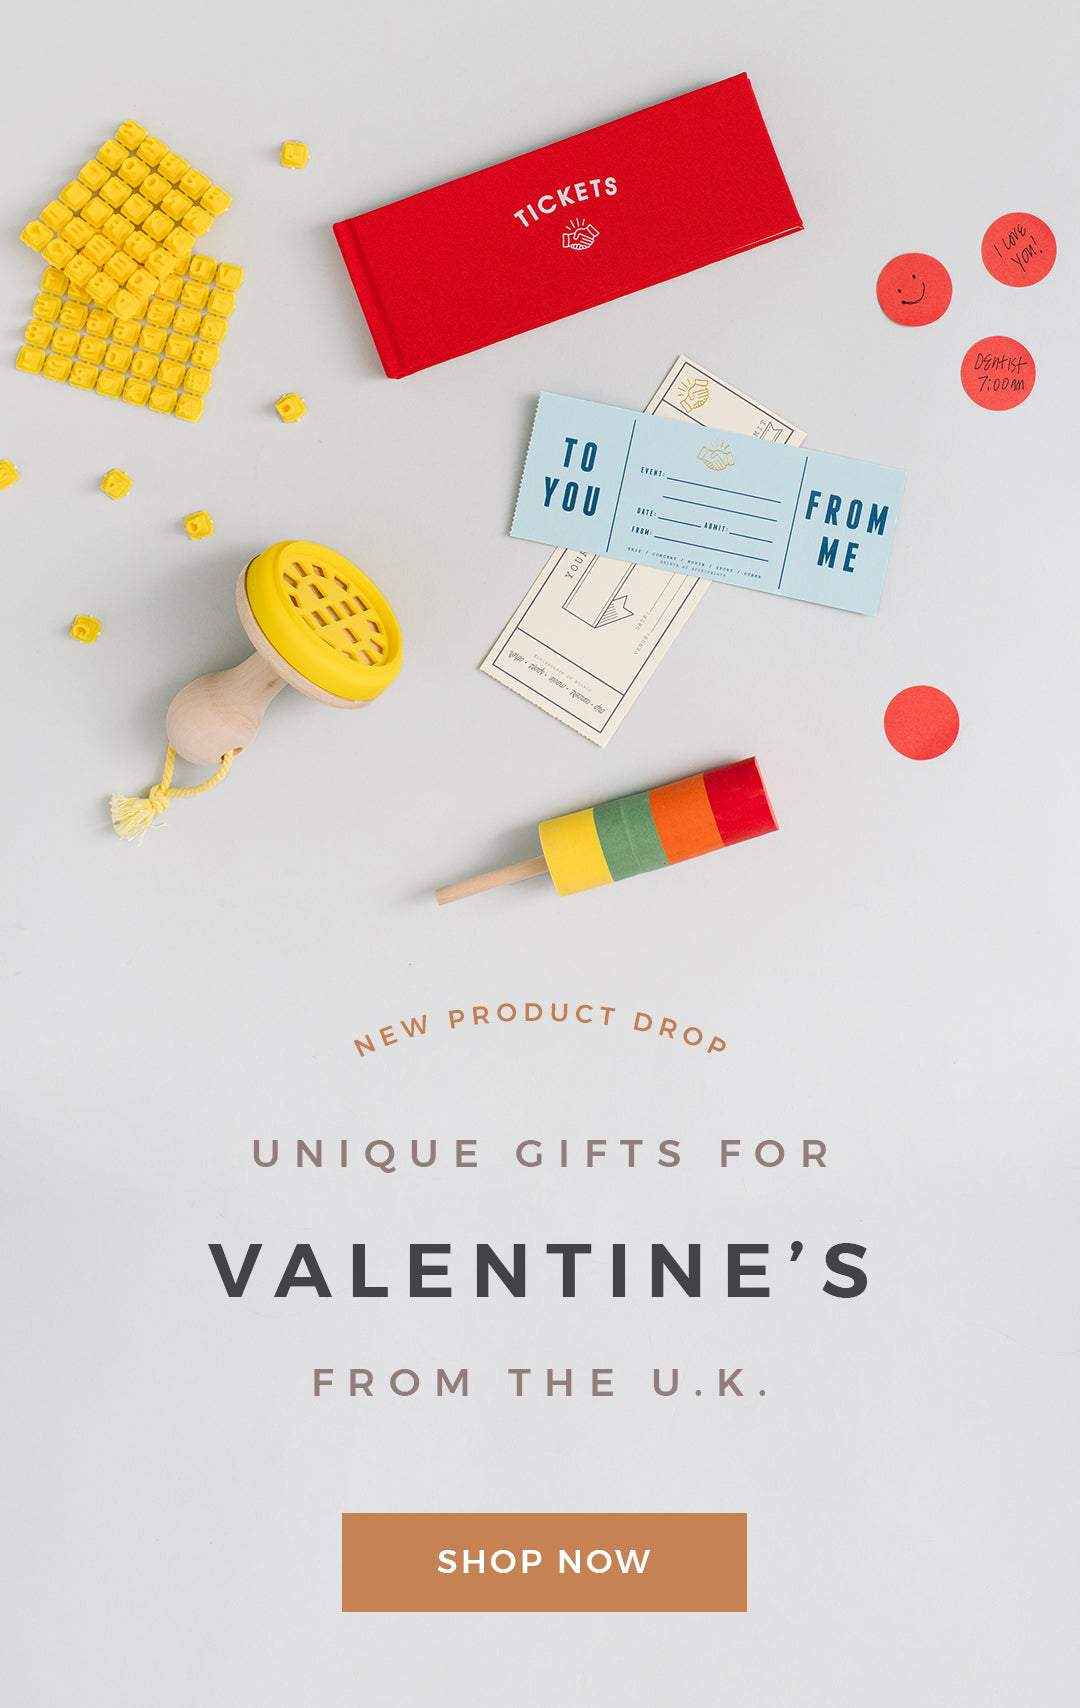 Unique Gifts for Valentine's from the U.K.